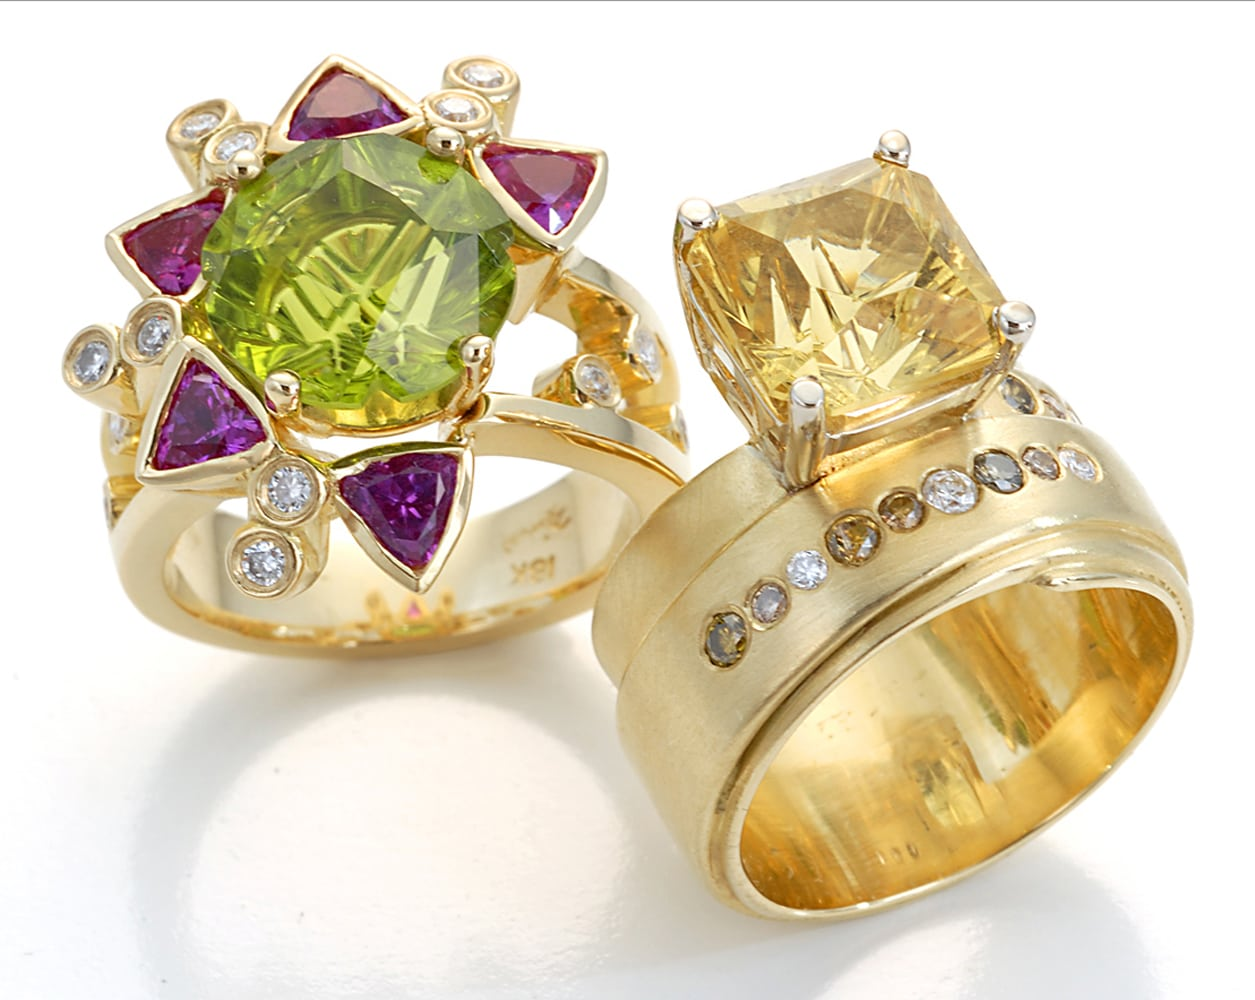 two gold rings standing together. the left one with a star pattern made of a large green stone surrounded by purple stones and diamonds sprinkled. The right one has a large yellow radiant cut stone with brown and white diamonds embedded on band Product Photography